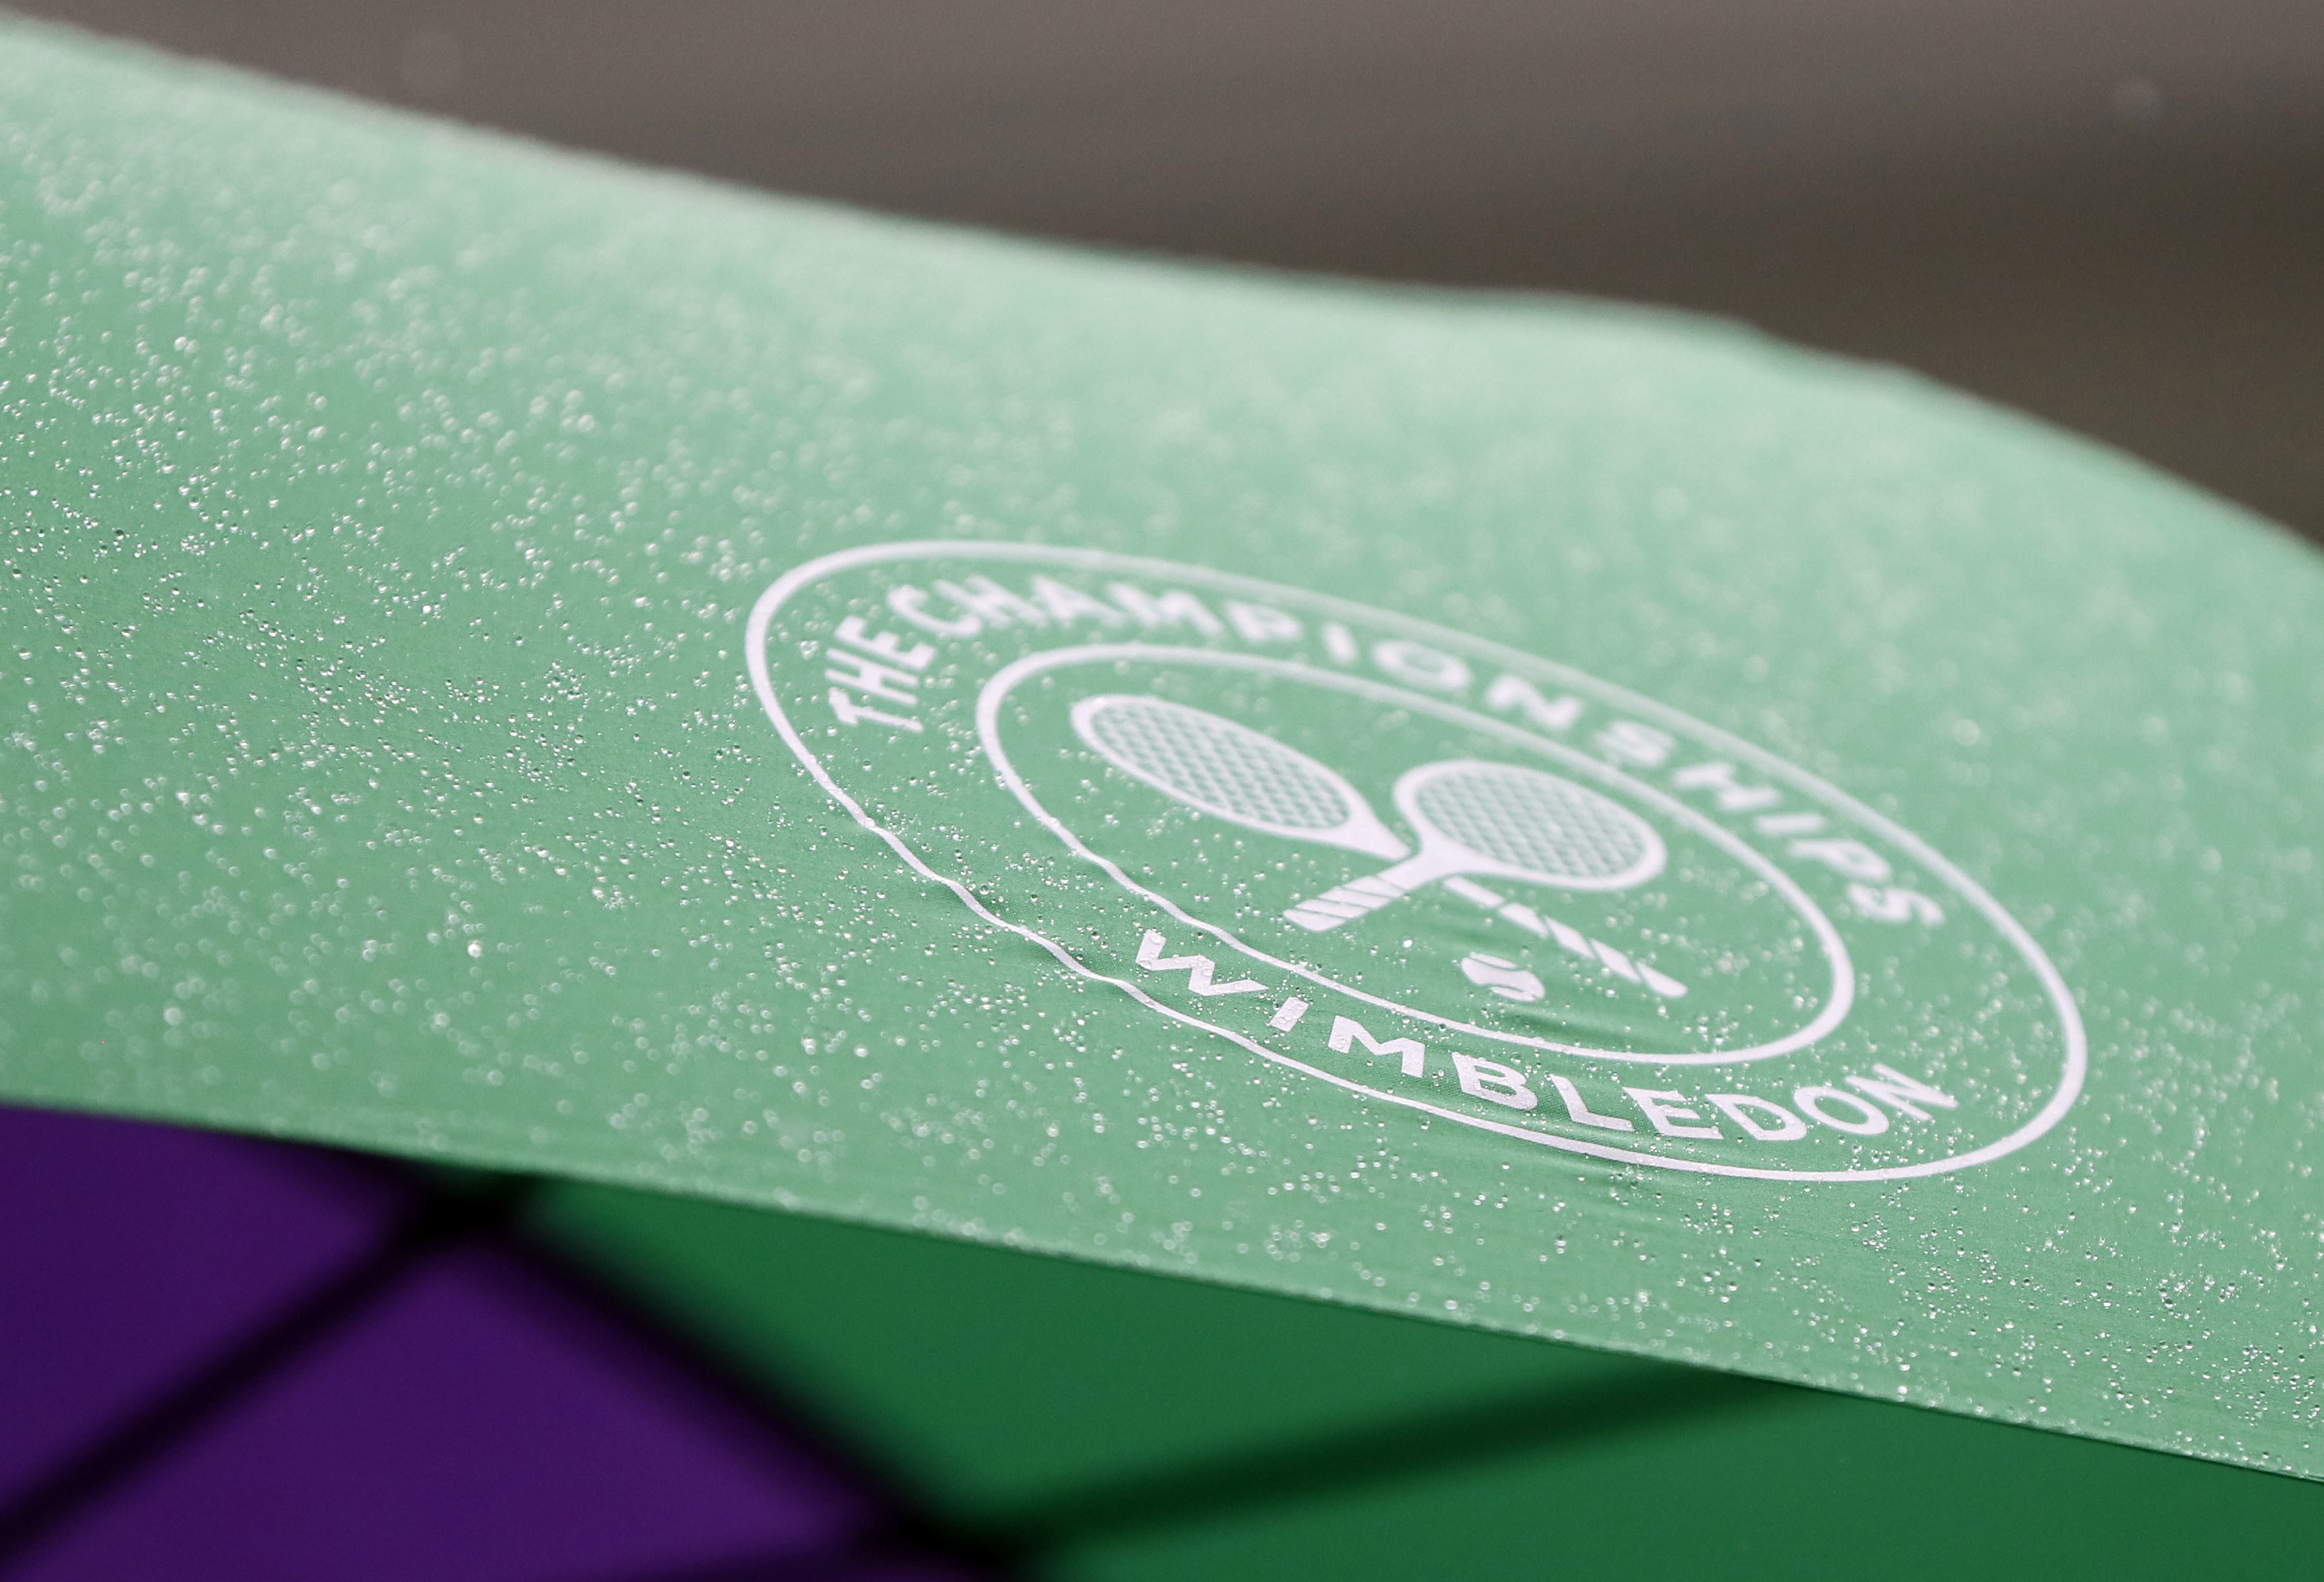 A spectator shelters from the rain on the opening day at the Wimbledon Tennis Championships in London Monday, July 3, 2017. (AP Photo/Kirsty Wigglesworth)